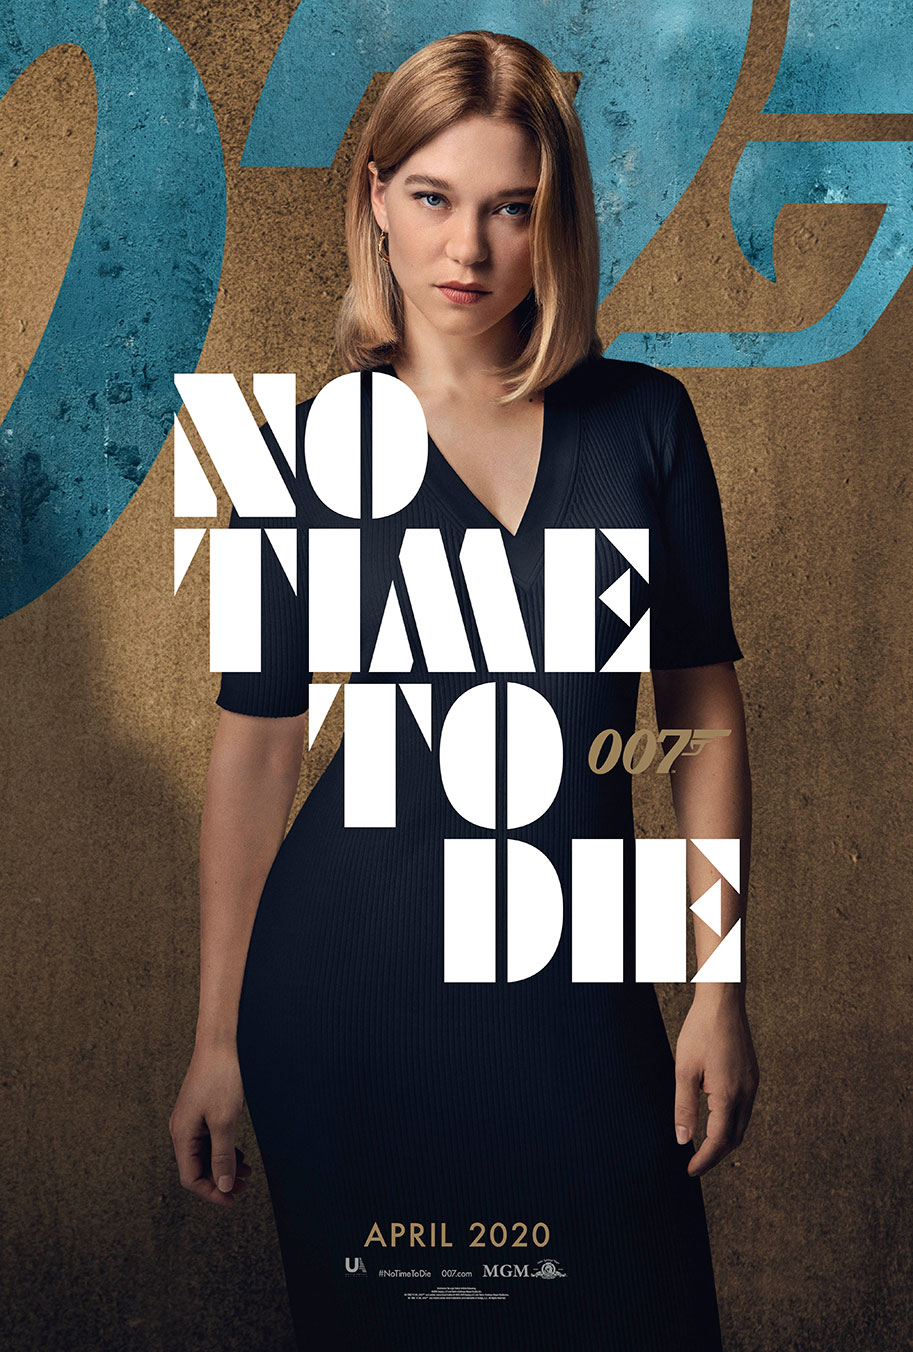 NO TIME TO DIE POSTER (#8 OF 12) - OKAY BHARGAV